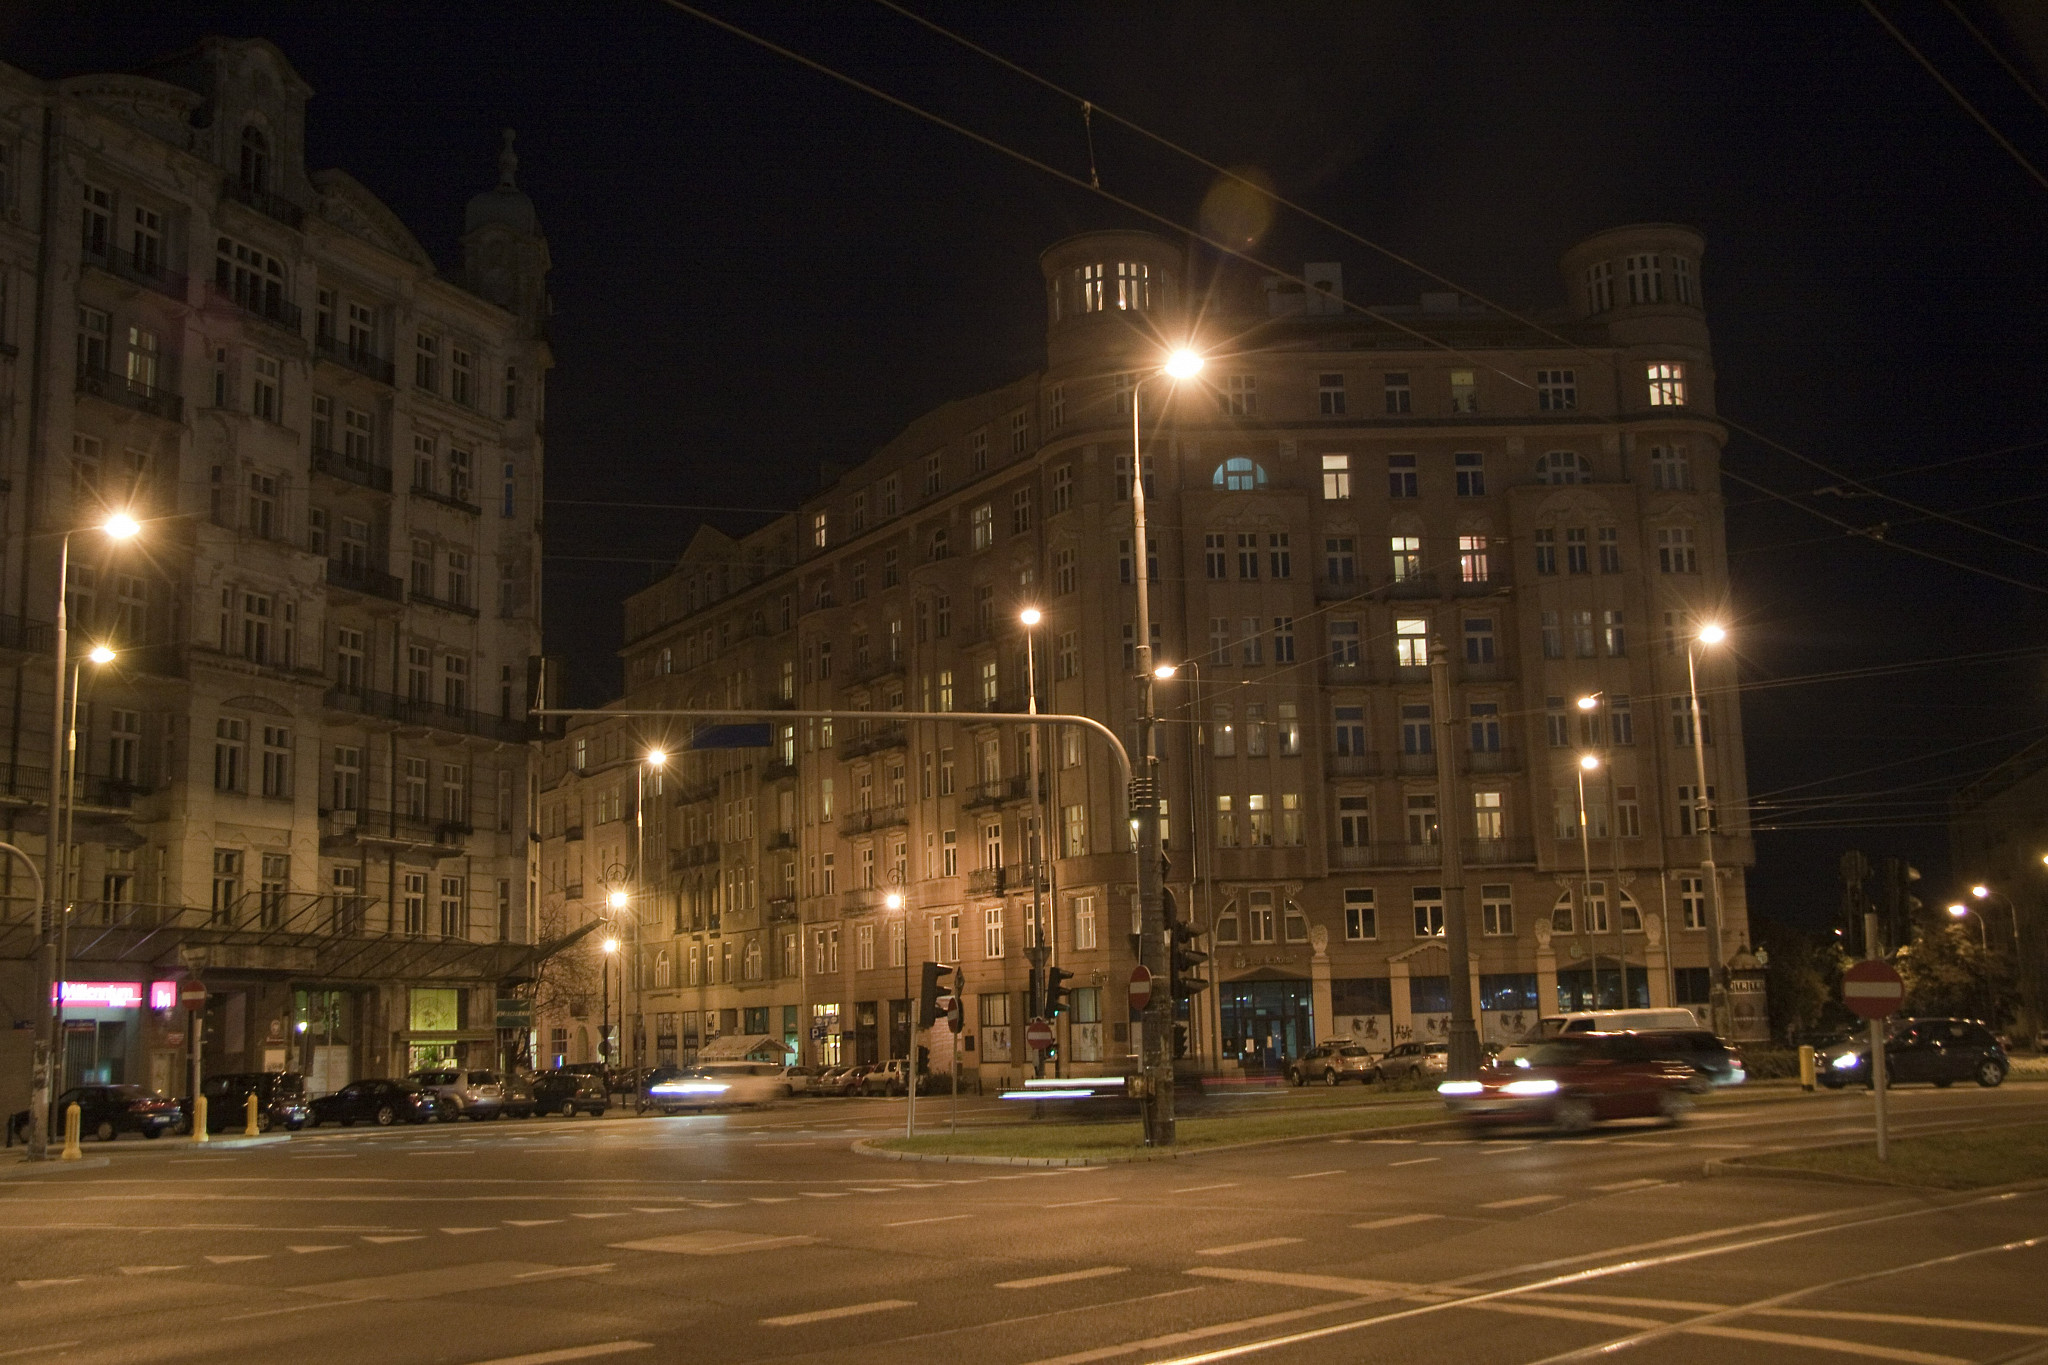 More buildings by night